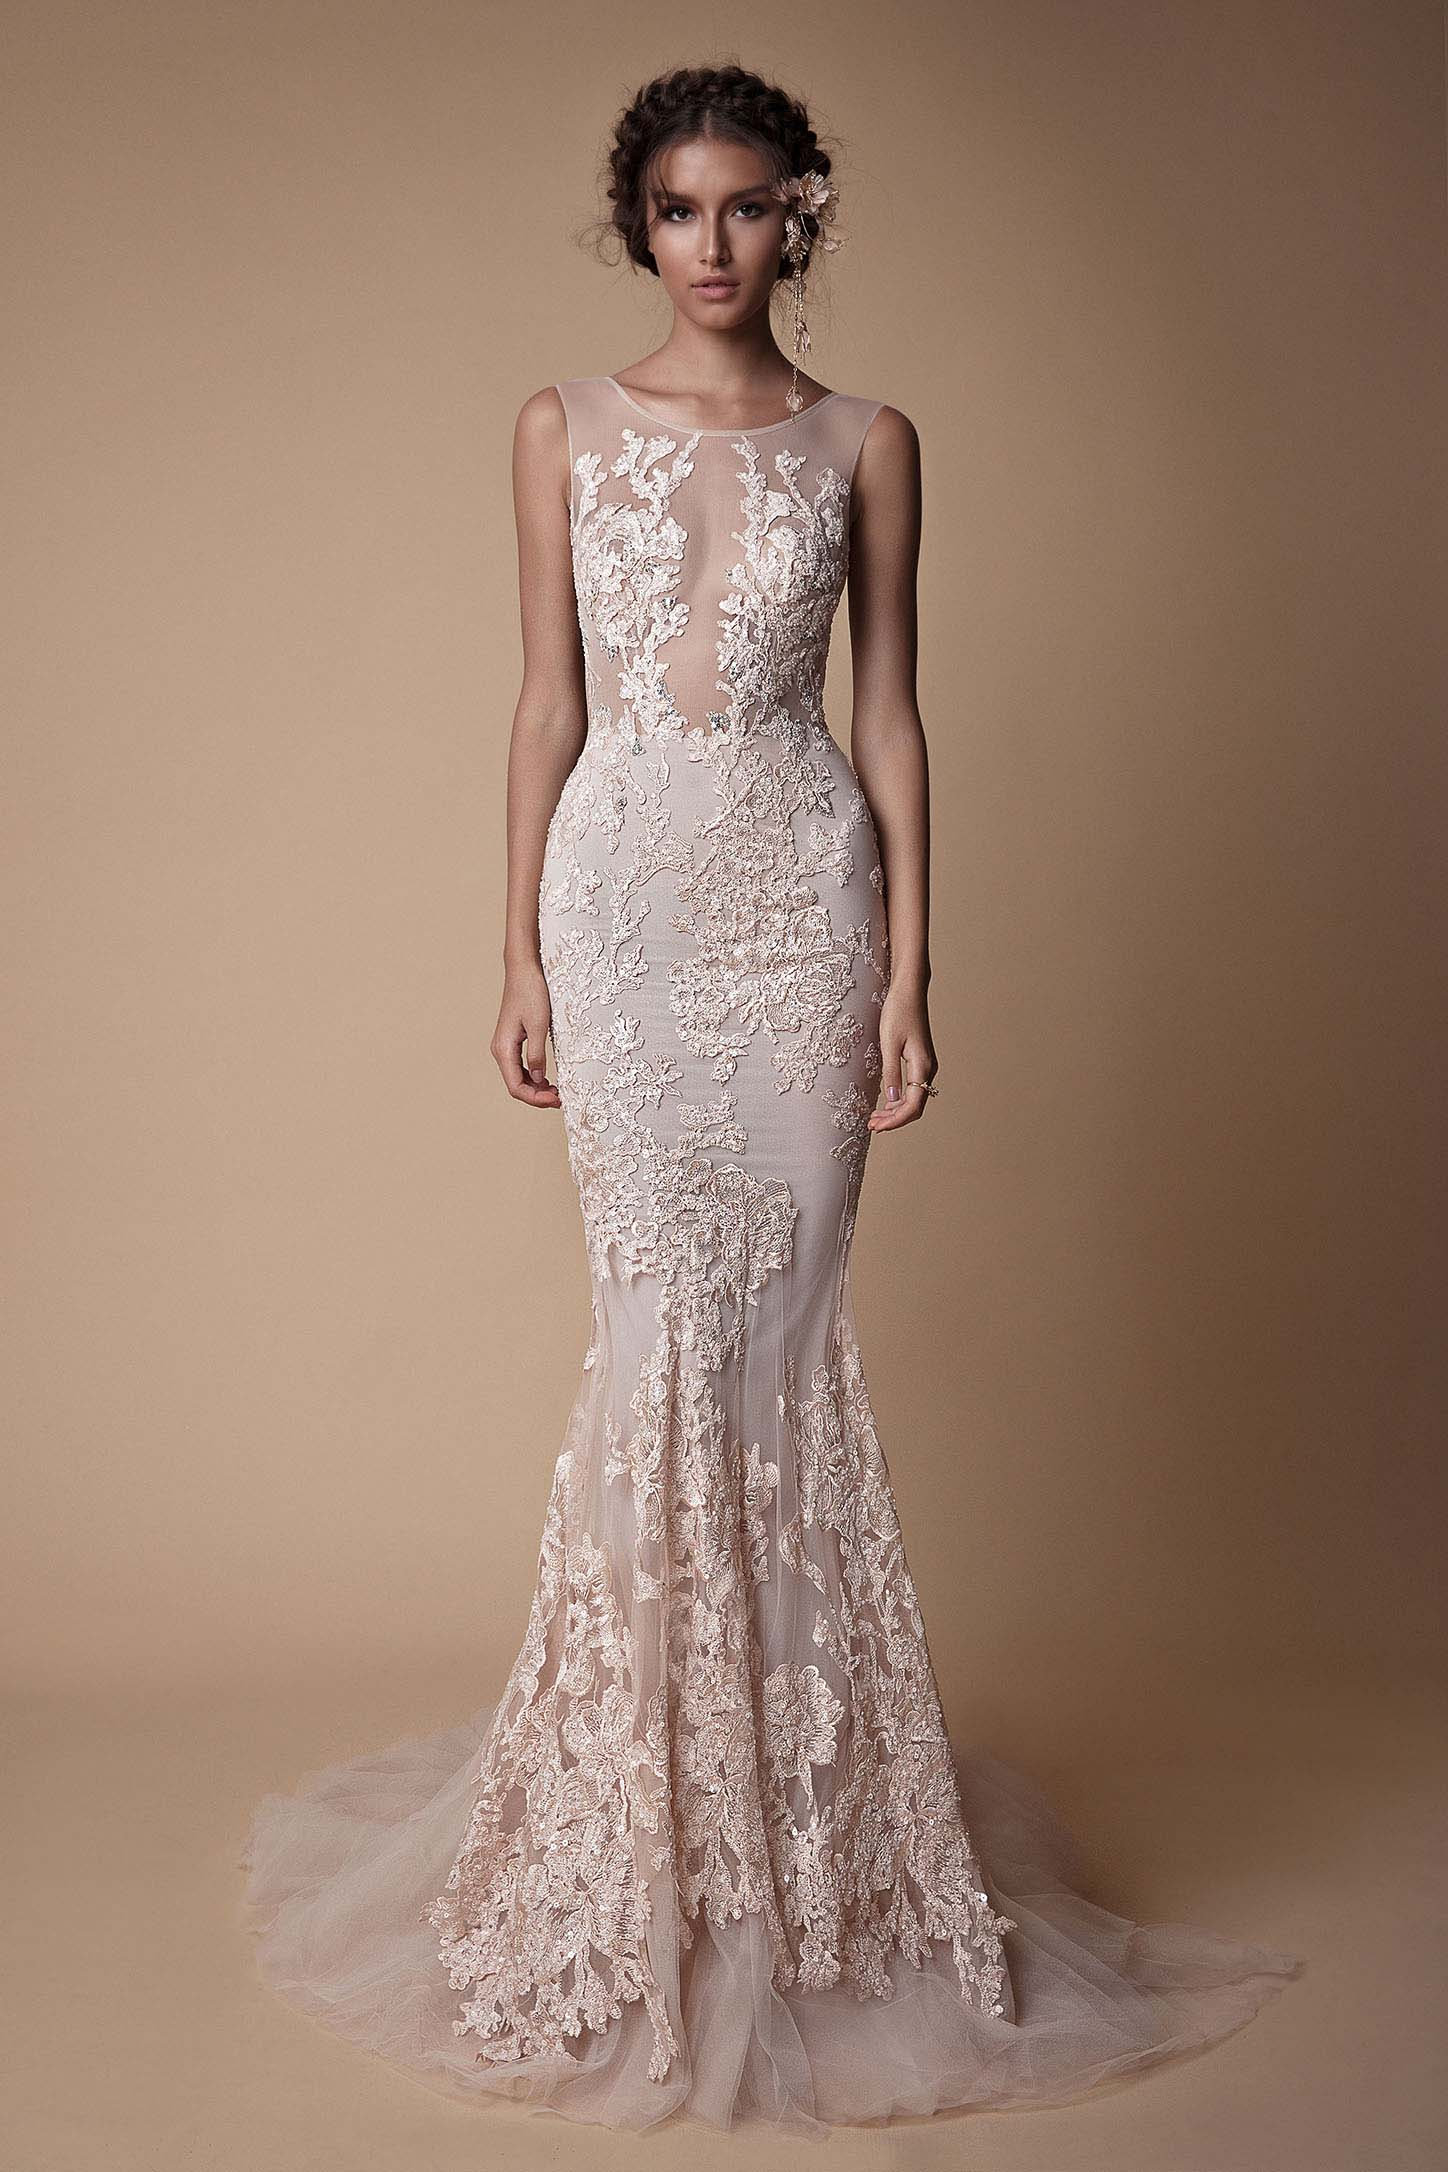 Berta Bridal 2018 Fall Wedding Dresses